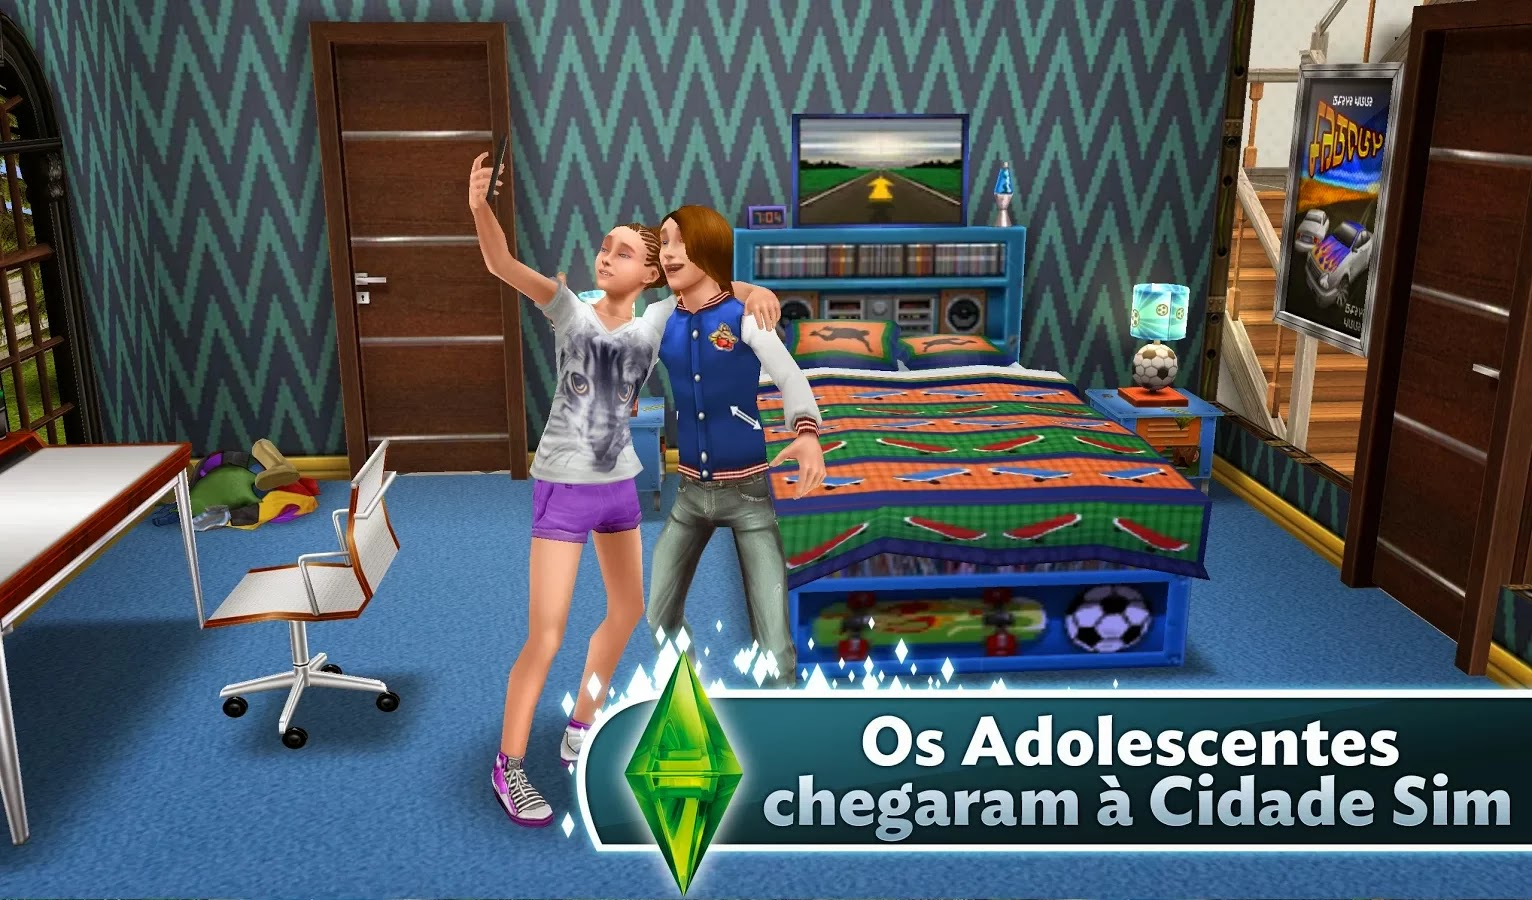 apkvol - Modded Android Games : The Sims FreePlay v2 7 12